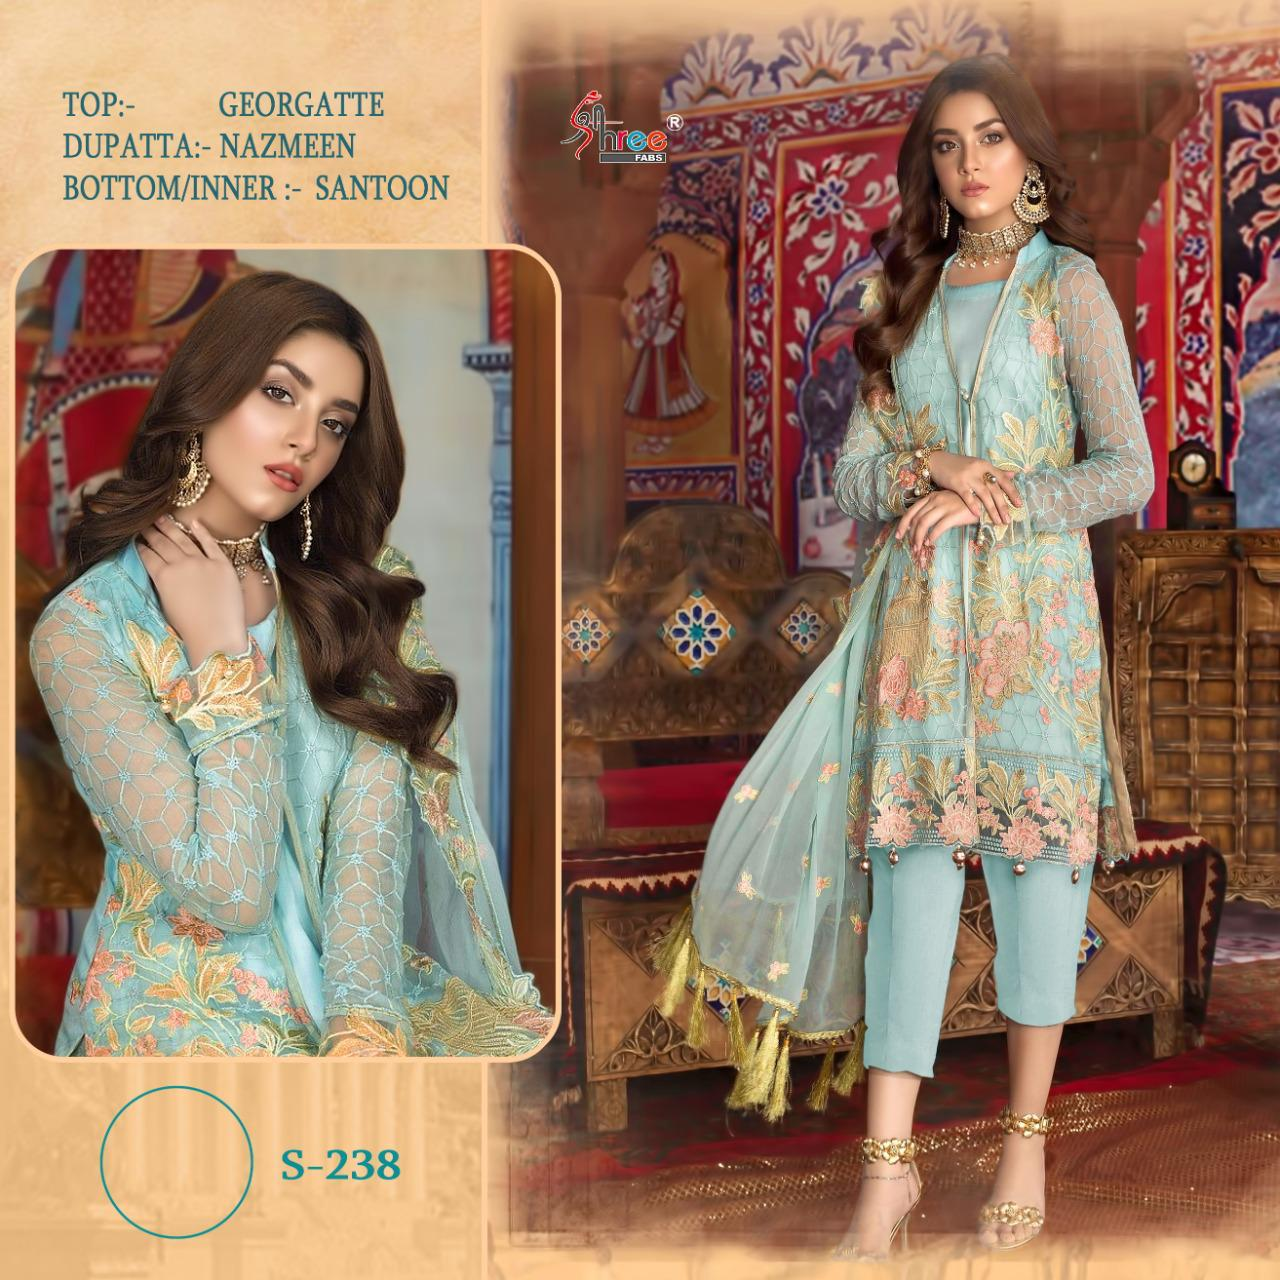 SHREE FABS S 238 GEORGETTE SUITS WHOLESALE